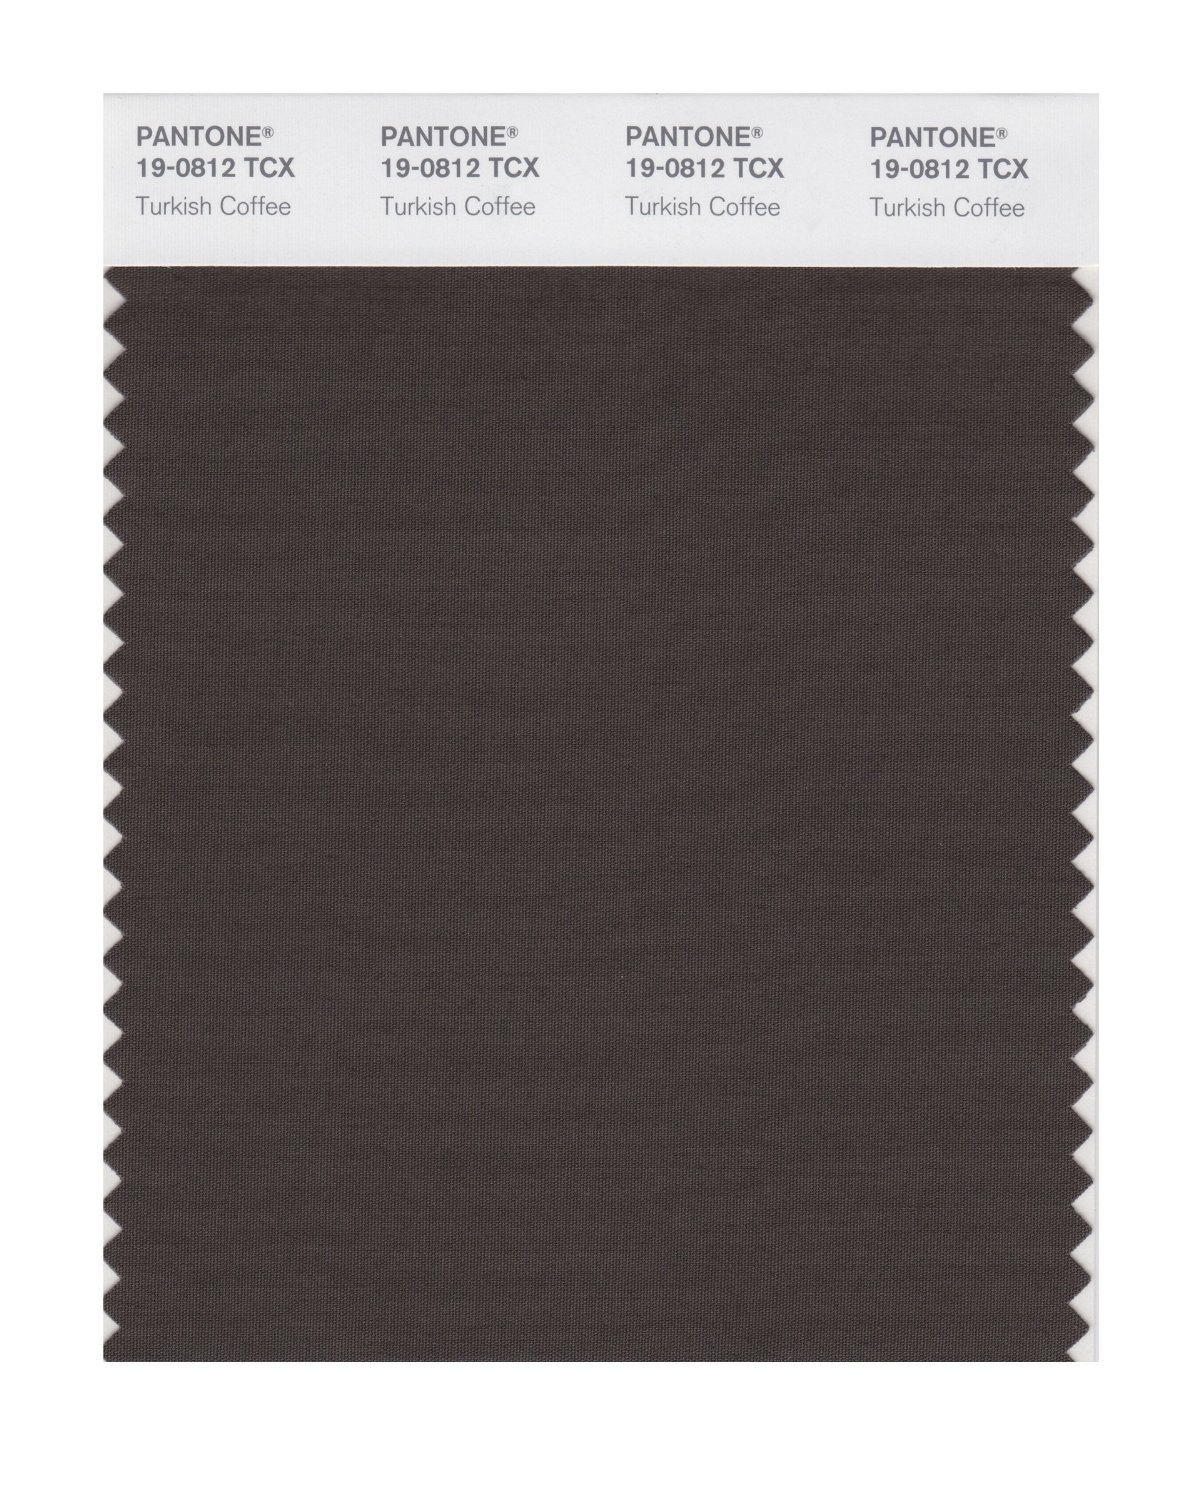 Pantone Smart Swatch 19-0812 Turkish Coffee